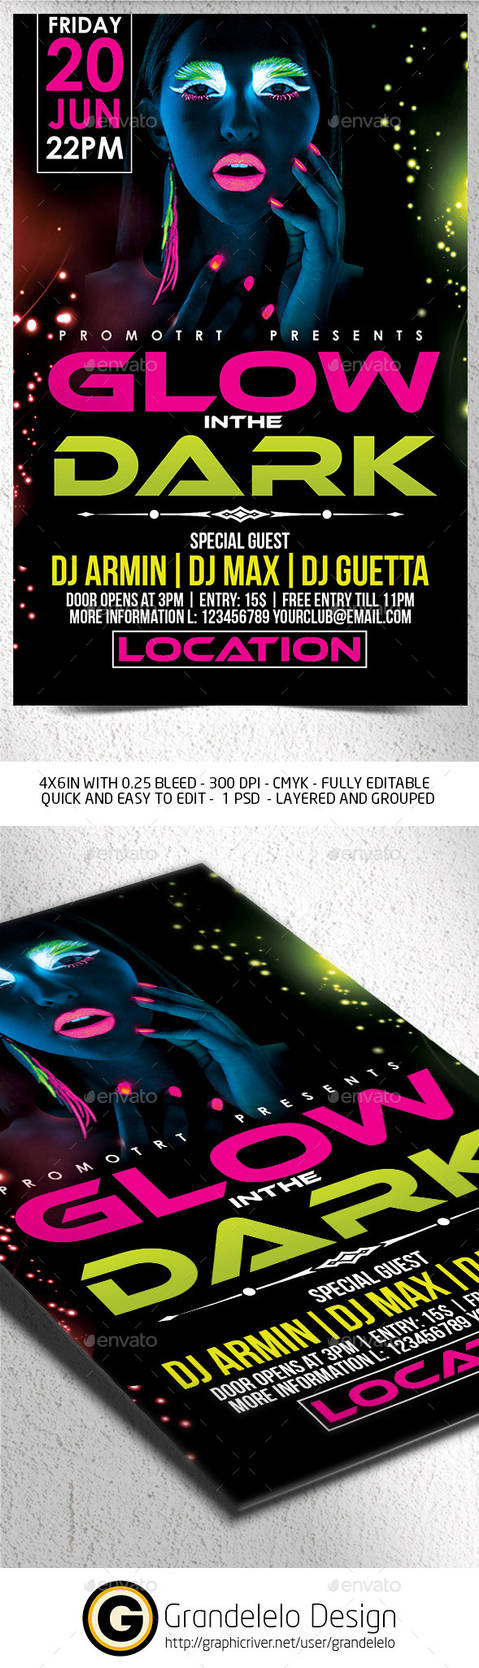 Glow in the Dark Flyer Template .PSD